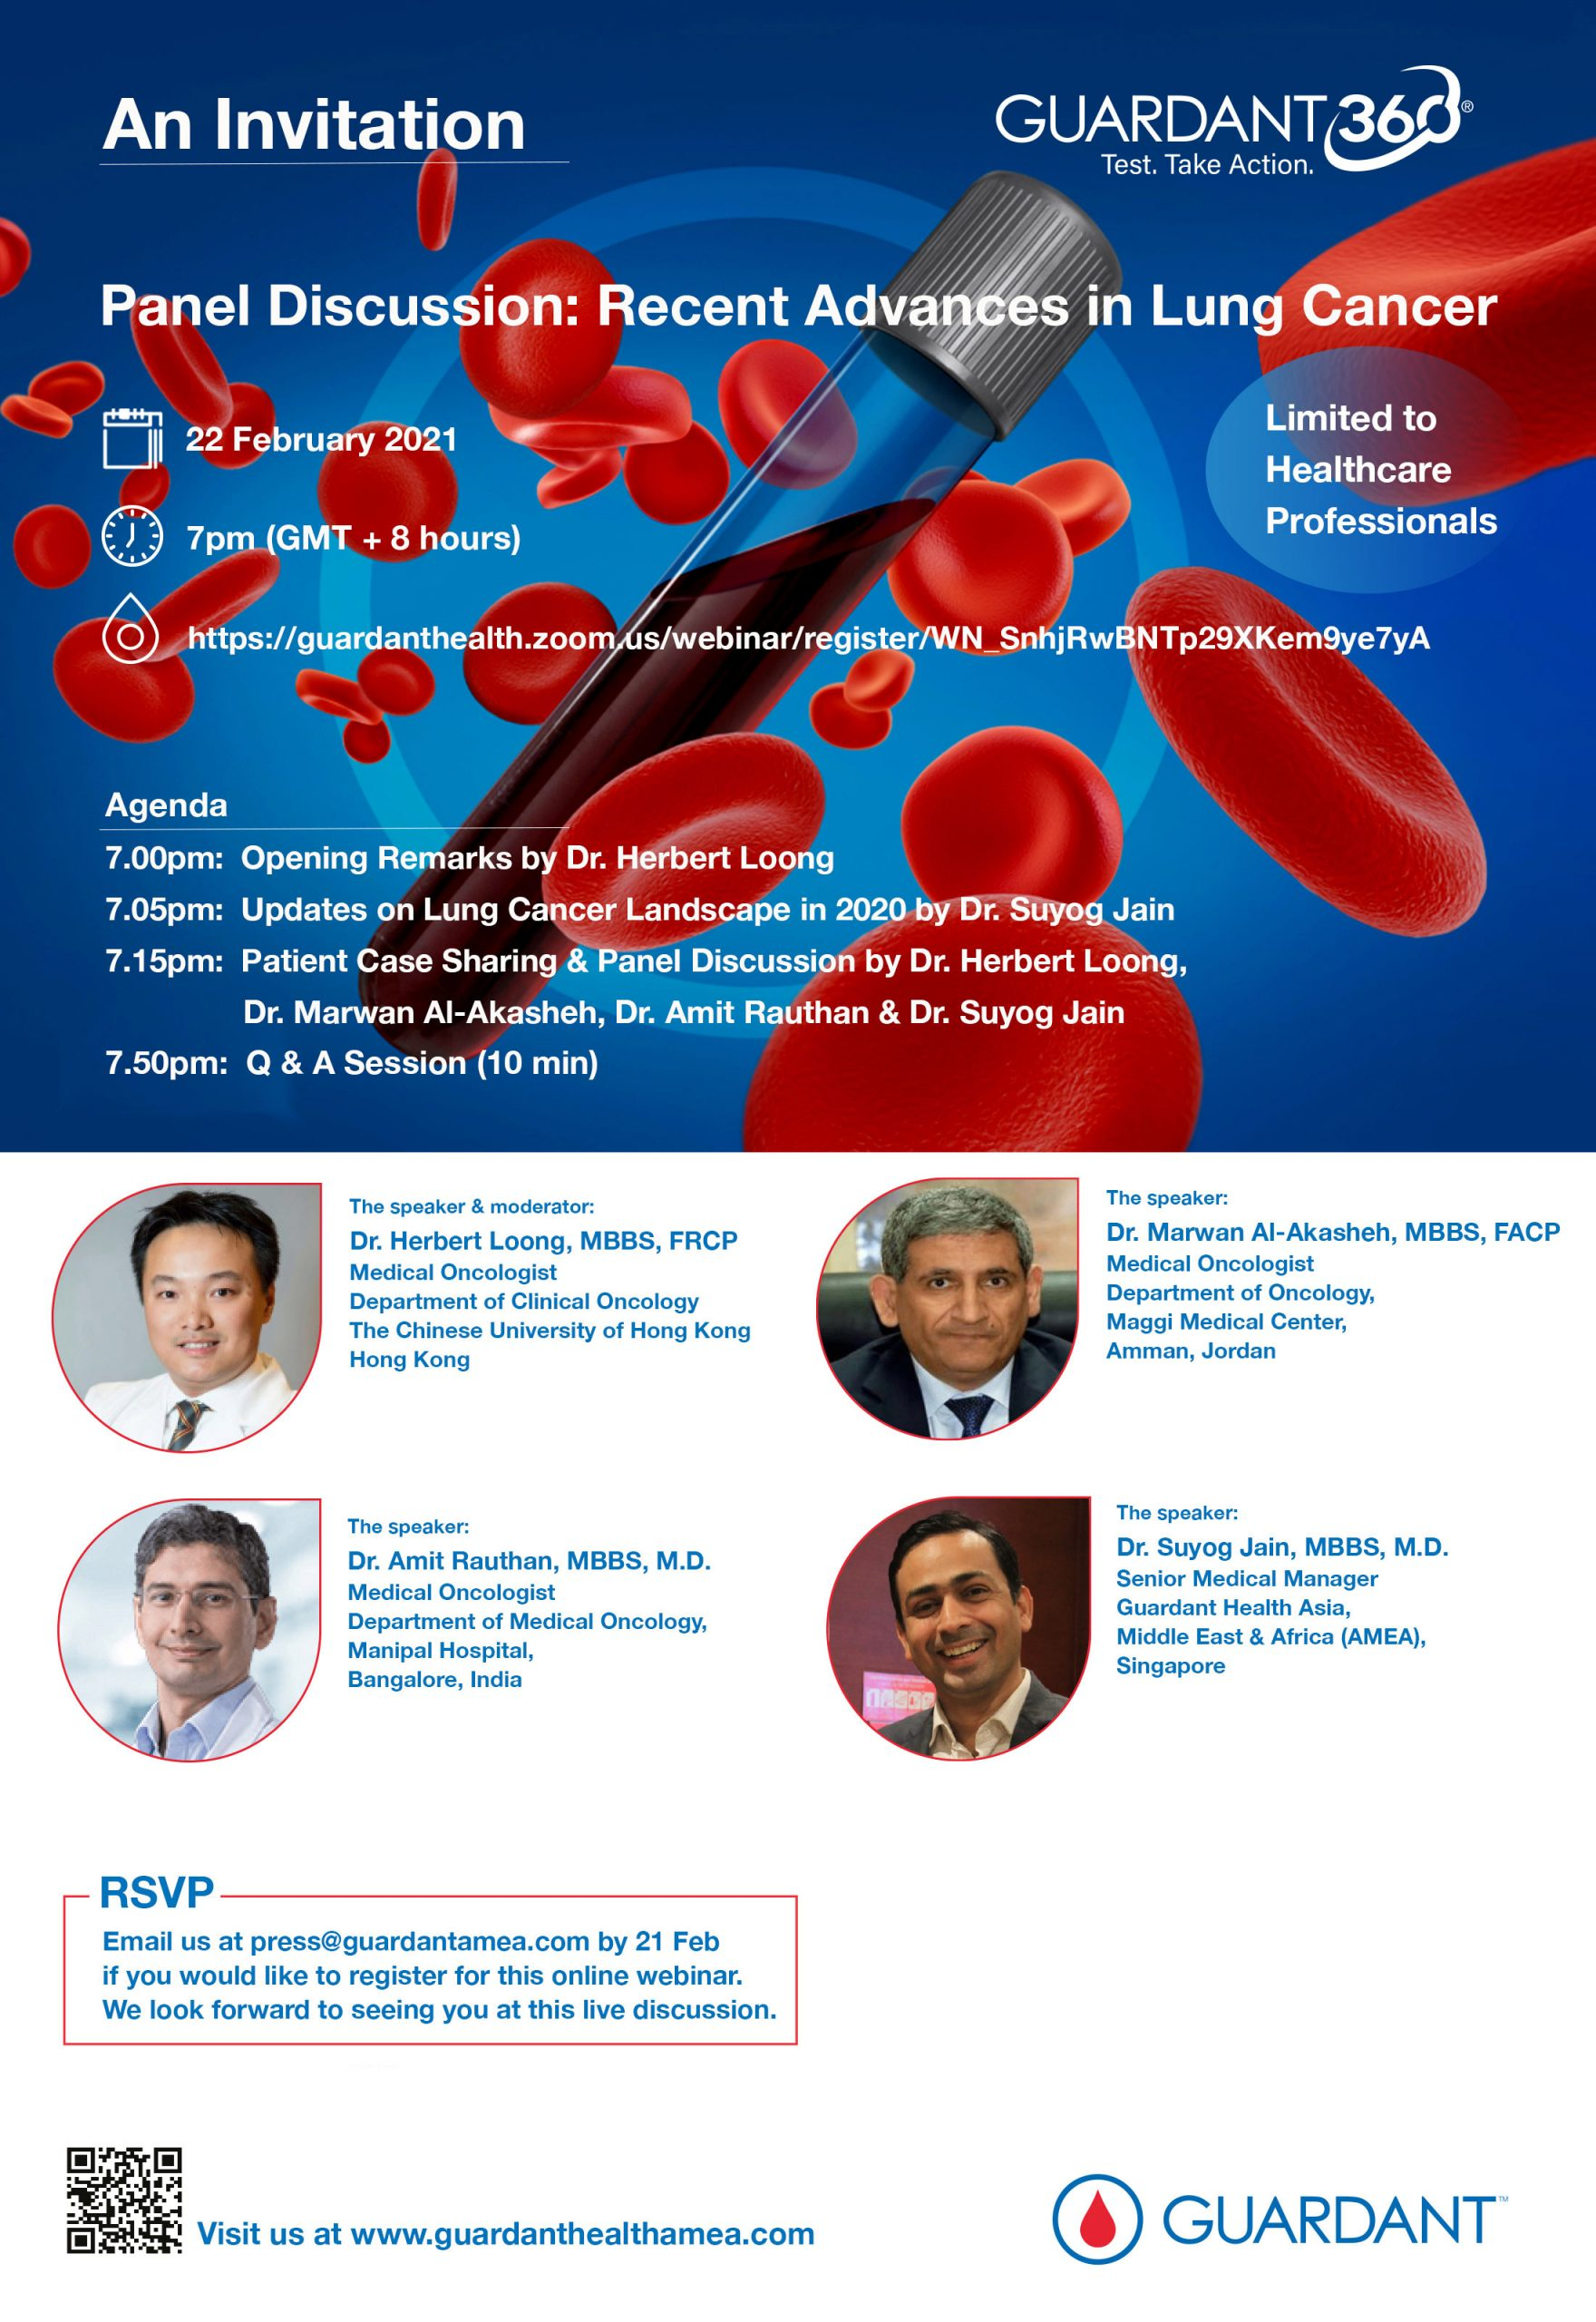 Panel Discussion: Recent Advances in Lung Cancer (Webinar)